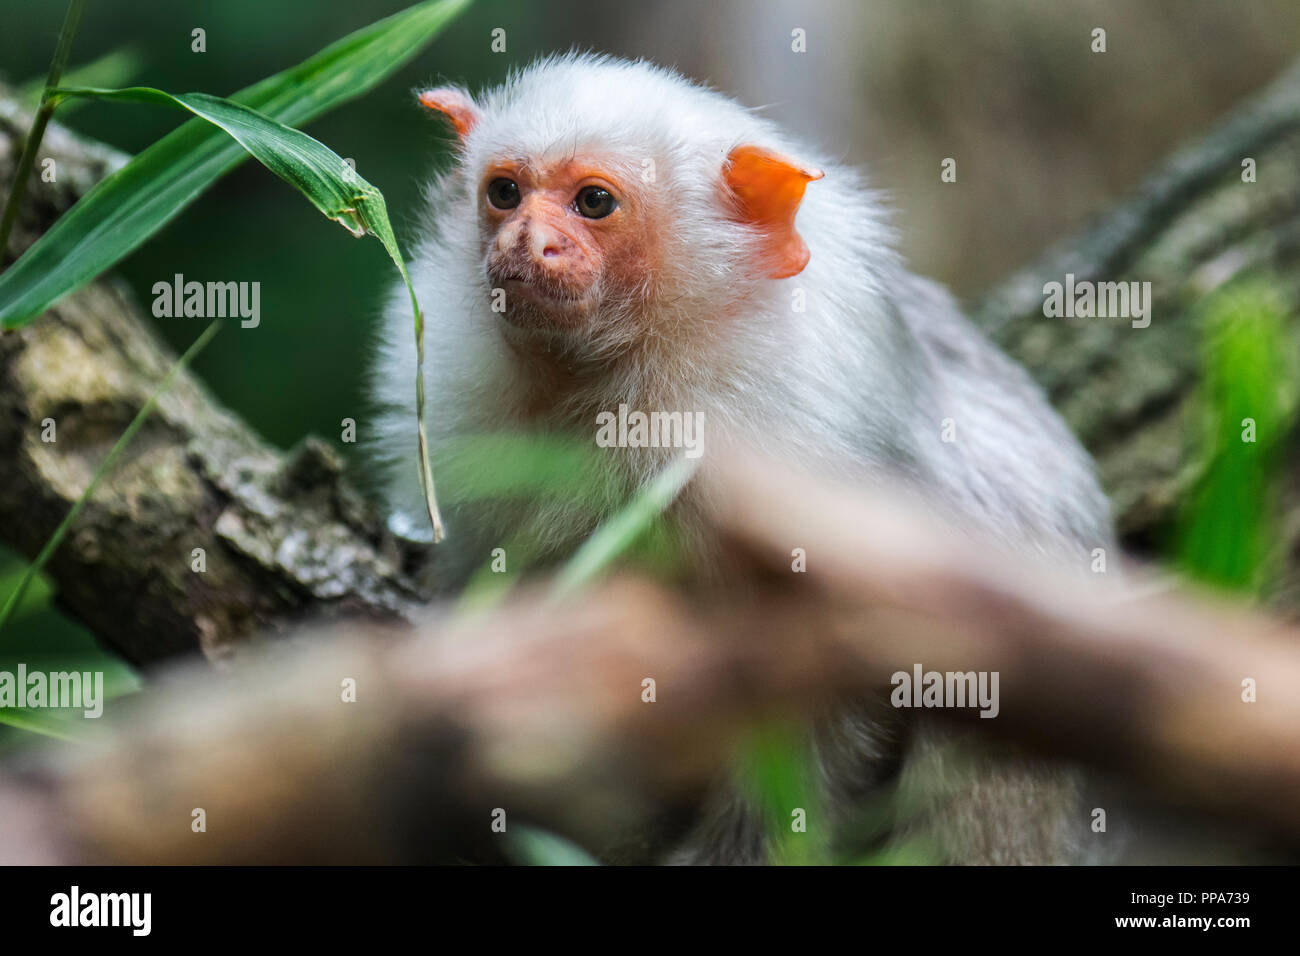 Silvery marmoset (Mico argentatus) in tree, native to the eastern Amazon Rainforest in Brazil - Stock Image